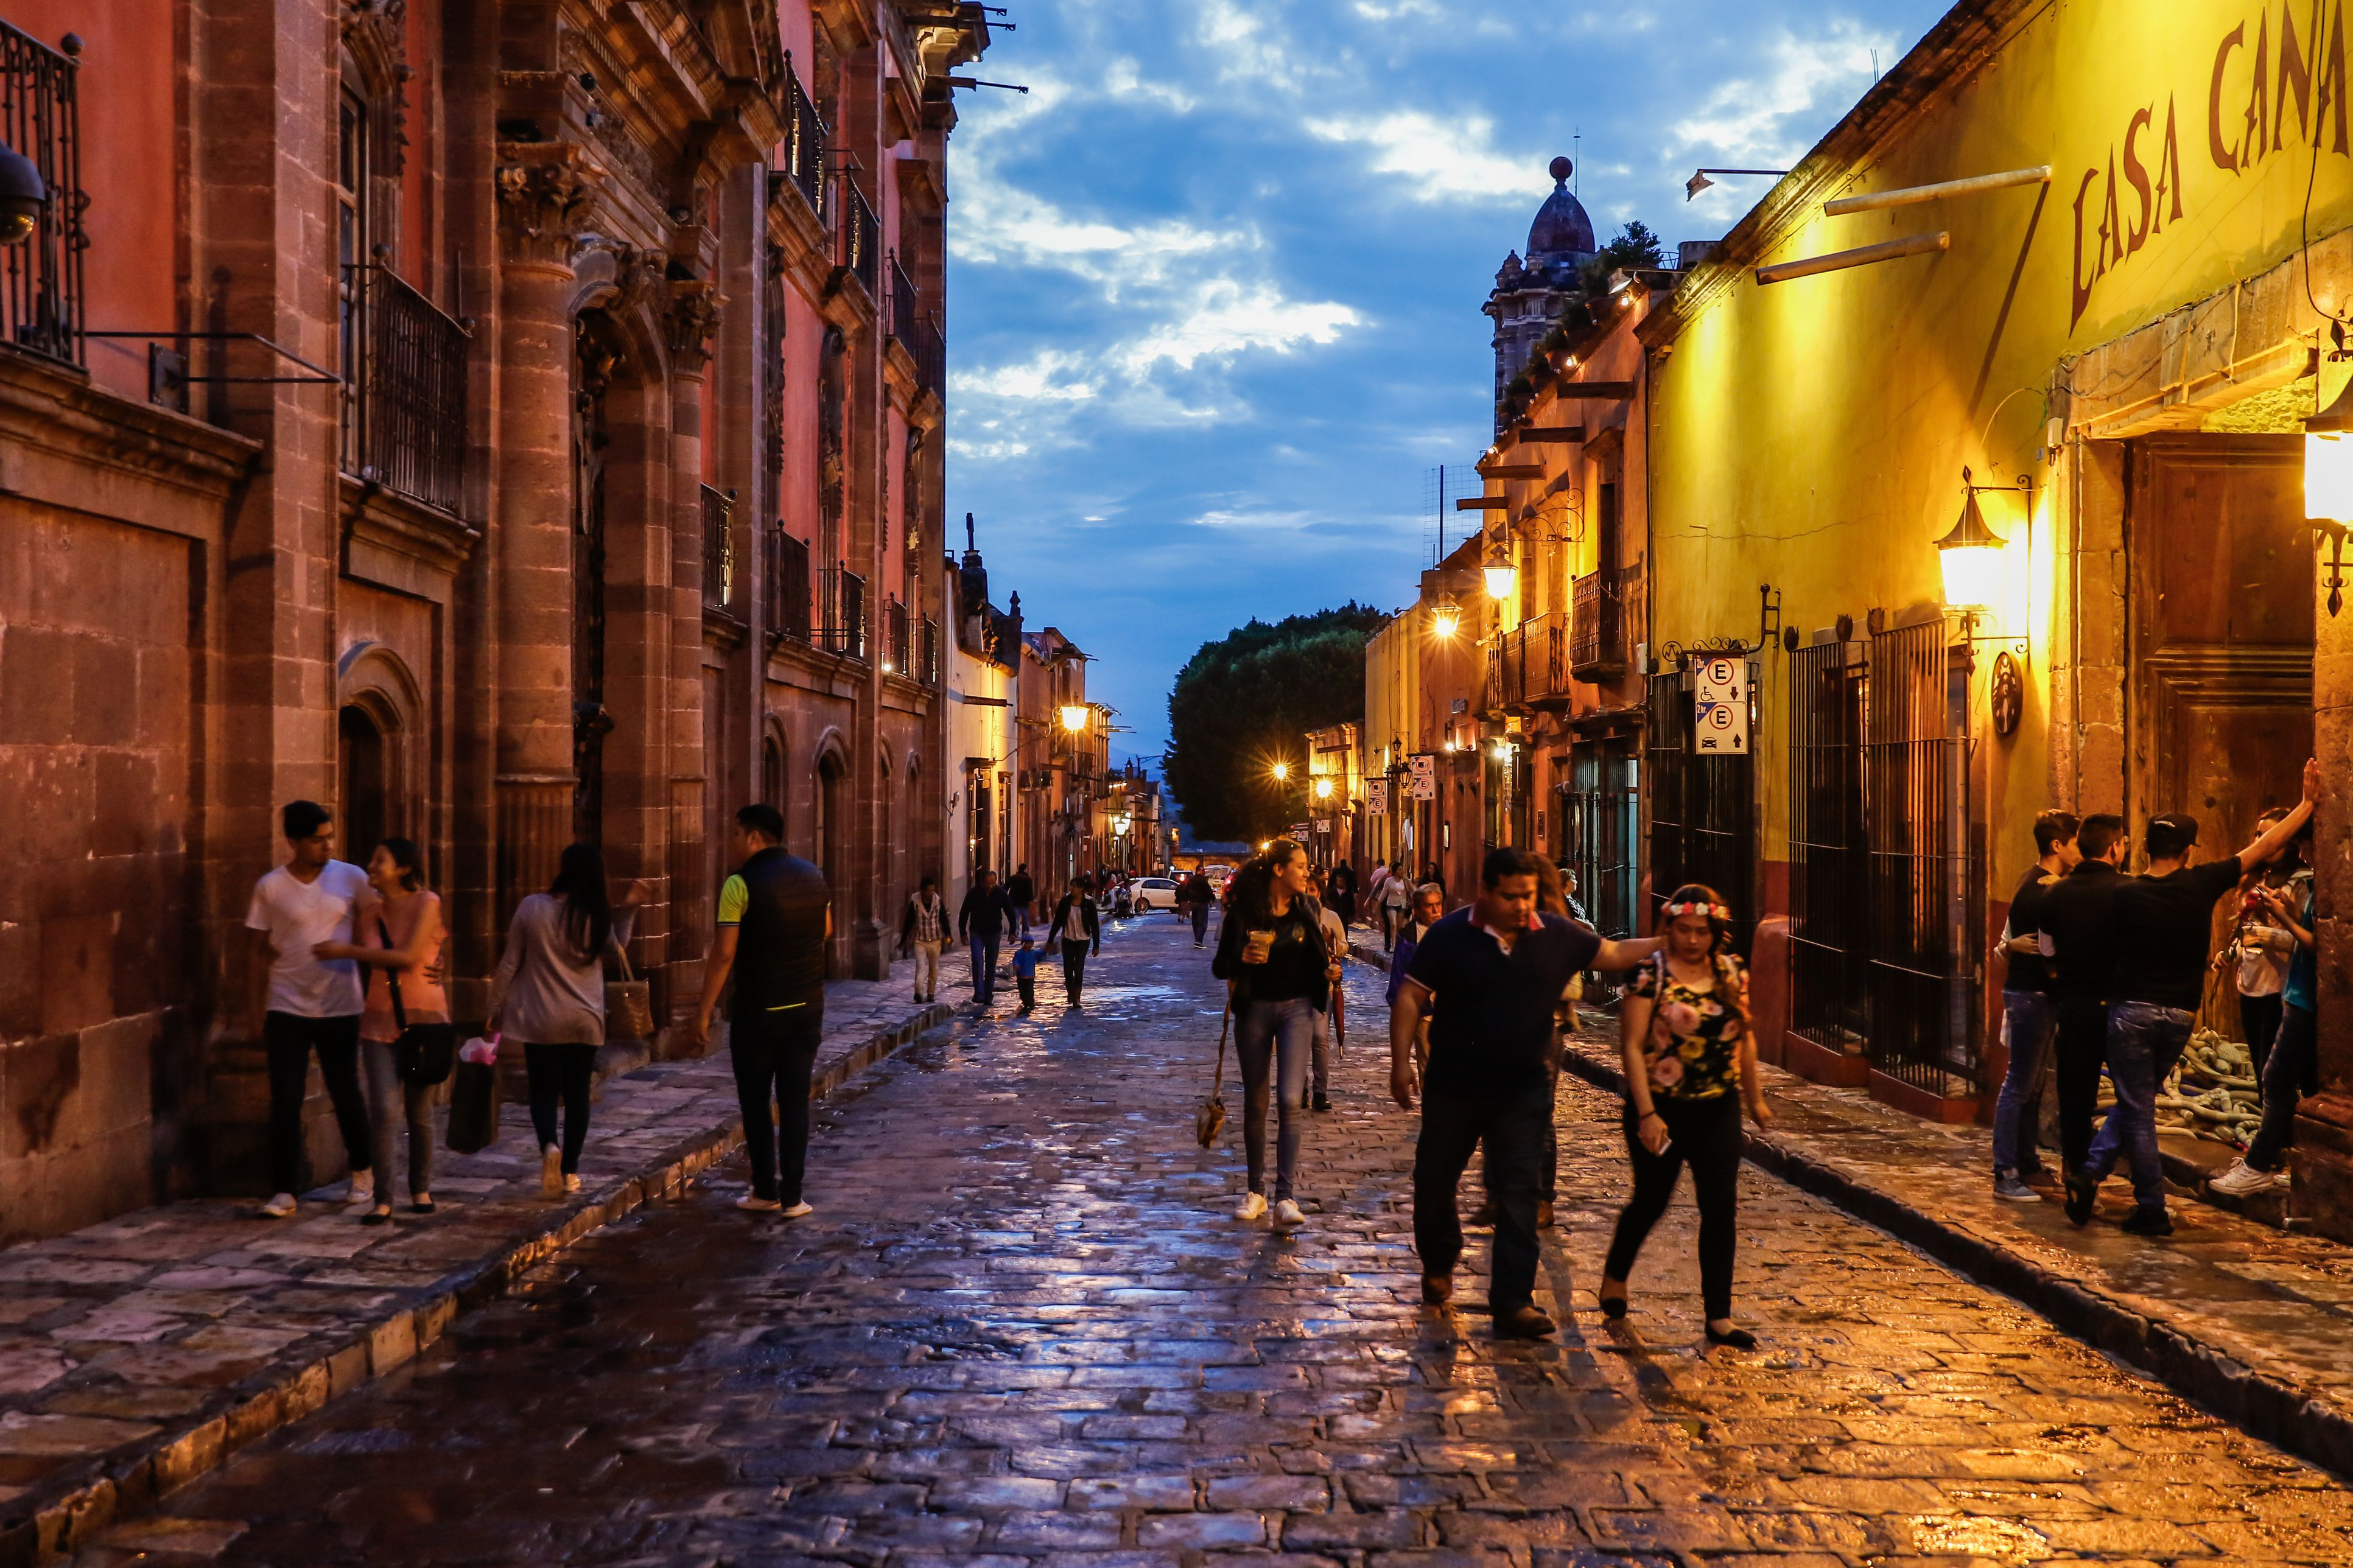 8 Magical Towns To Visit In Mexico